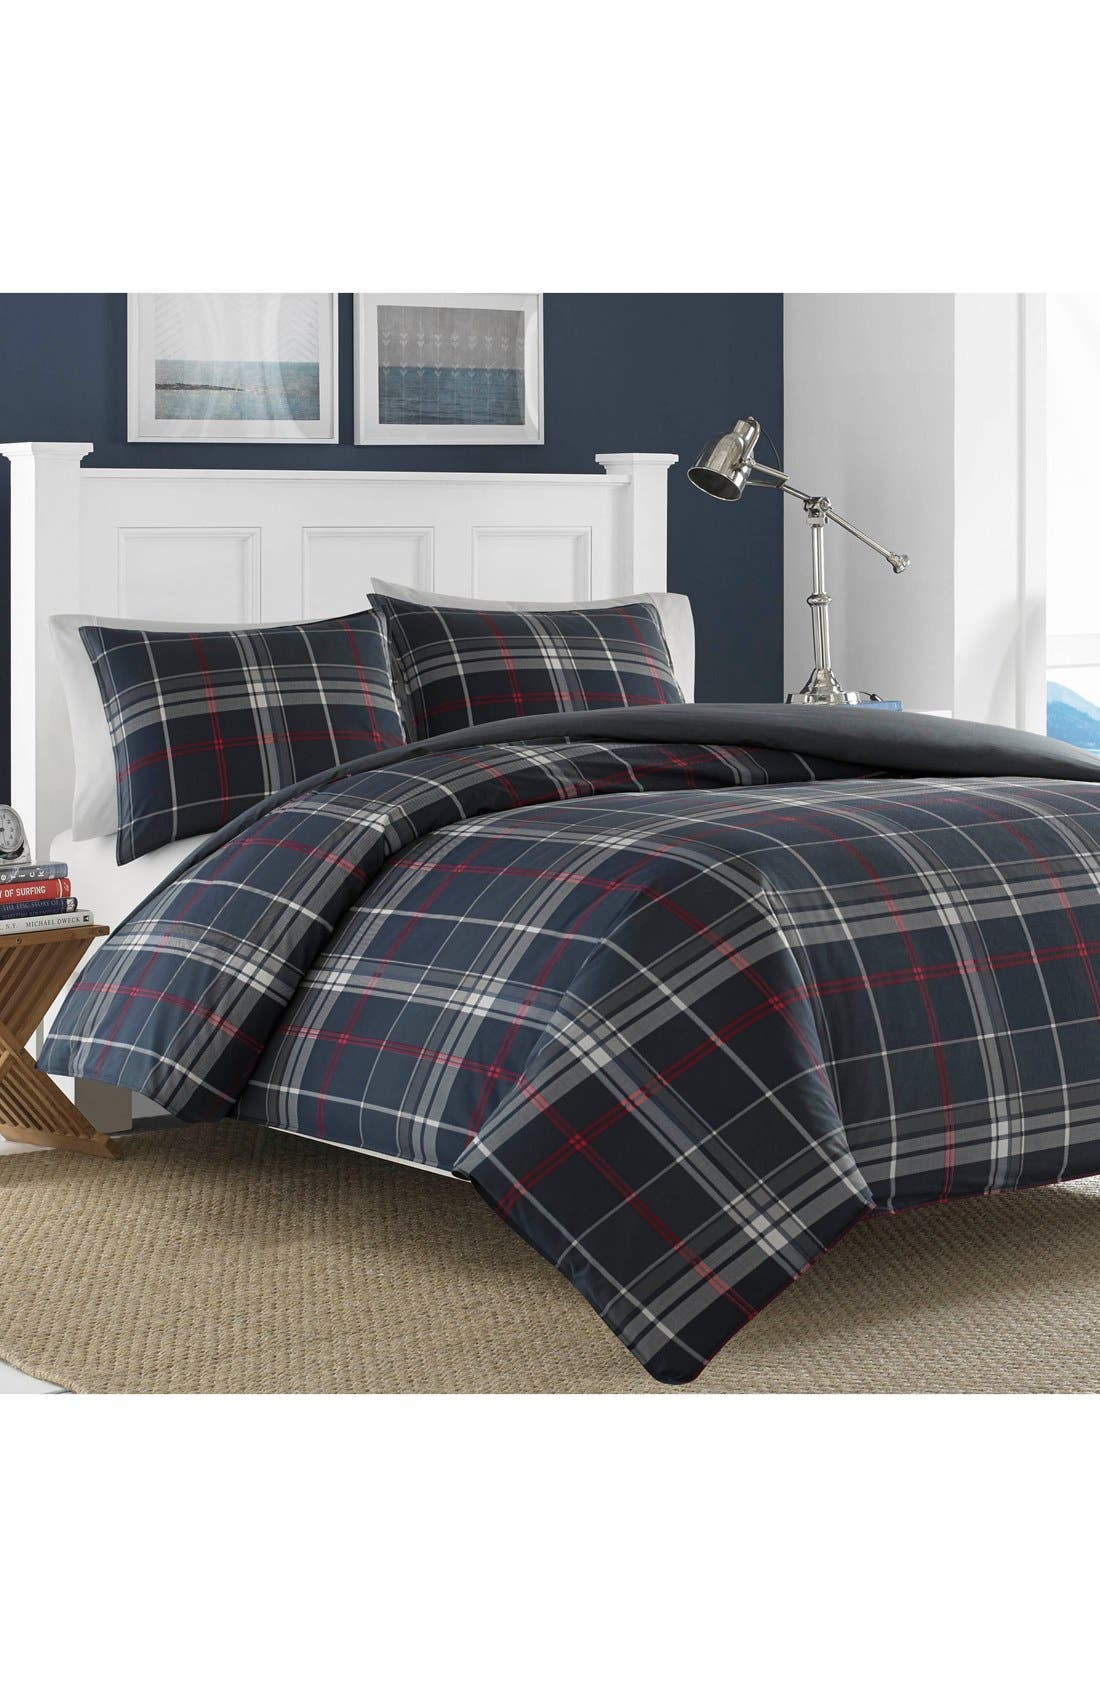 Alternate Image 1 Selected - Nautica Booker Cotton Comforter & Sham Set